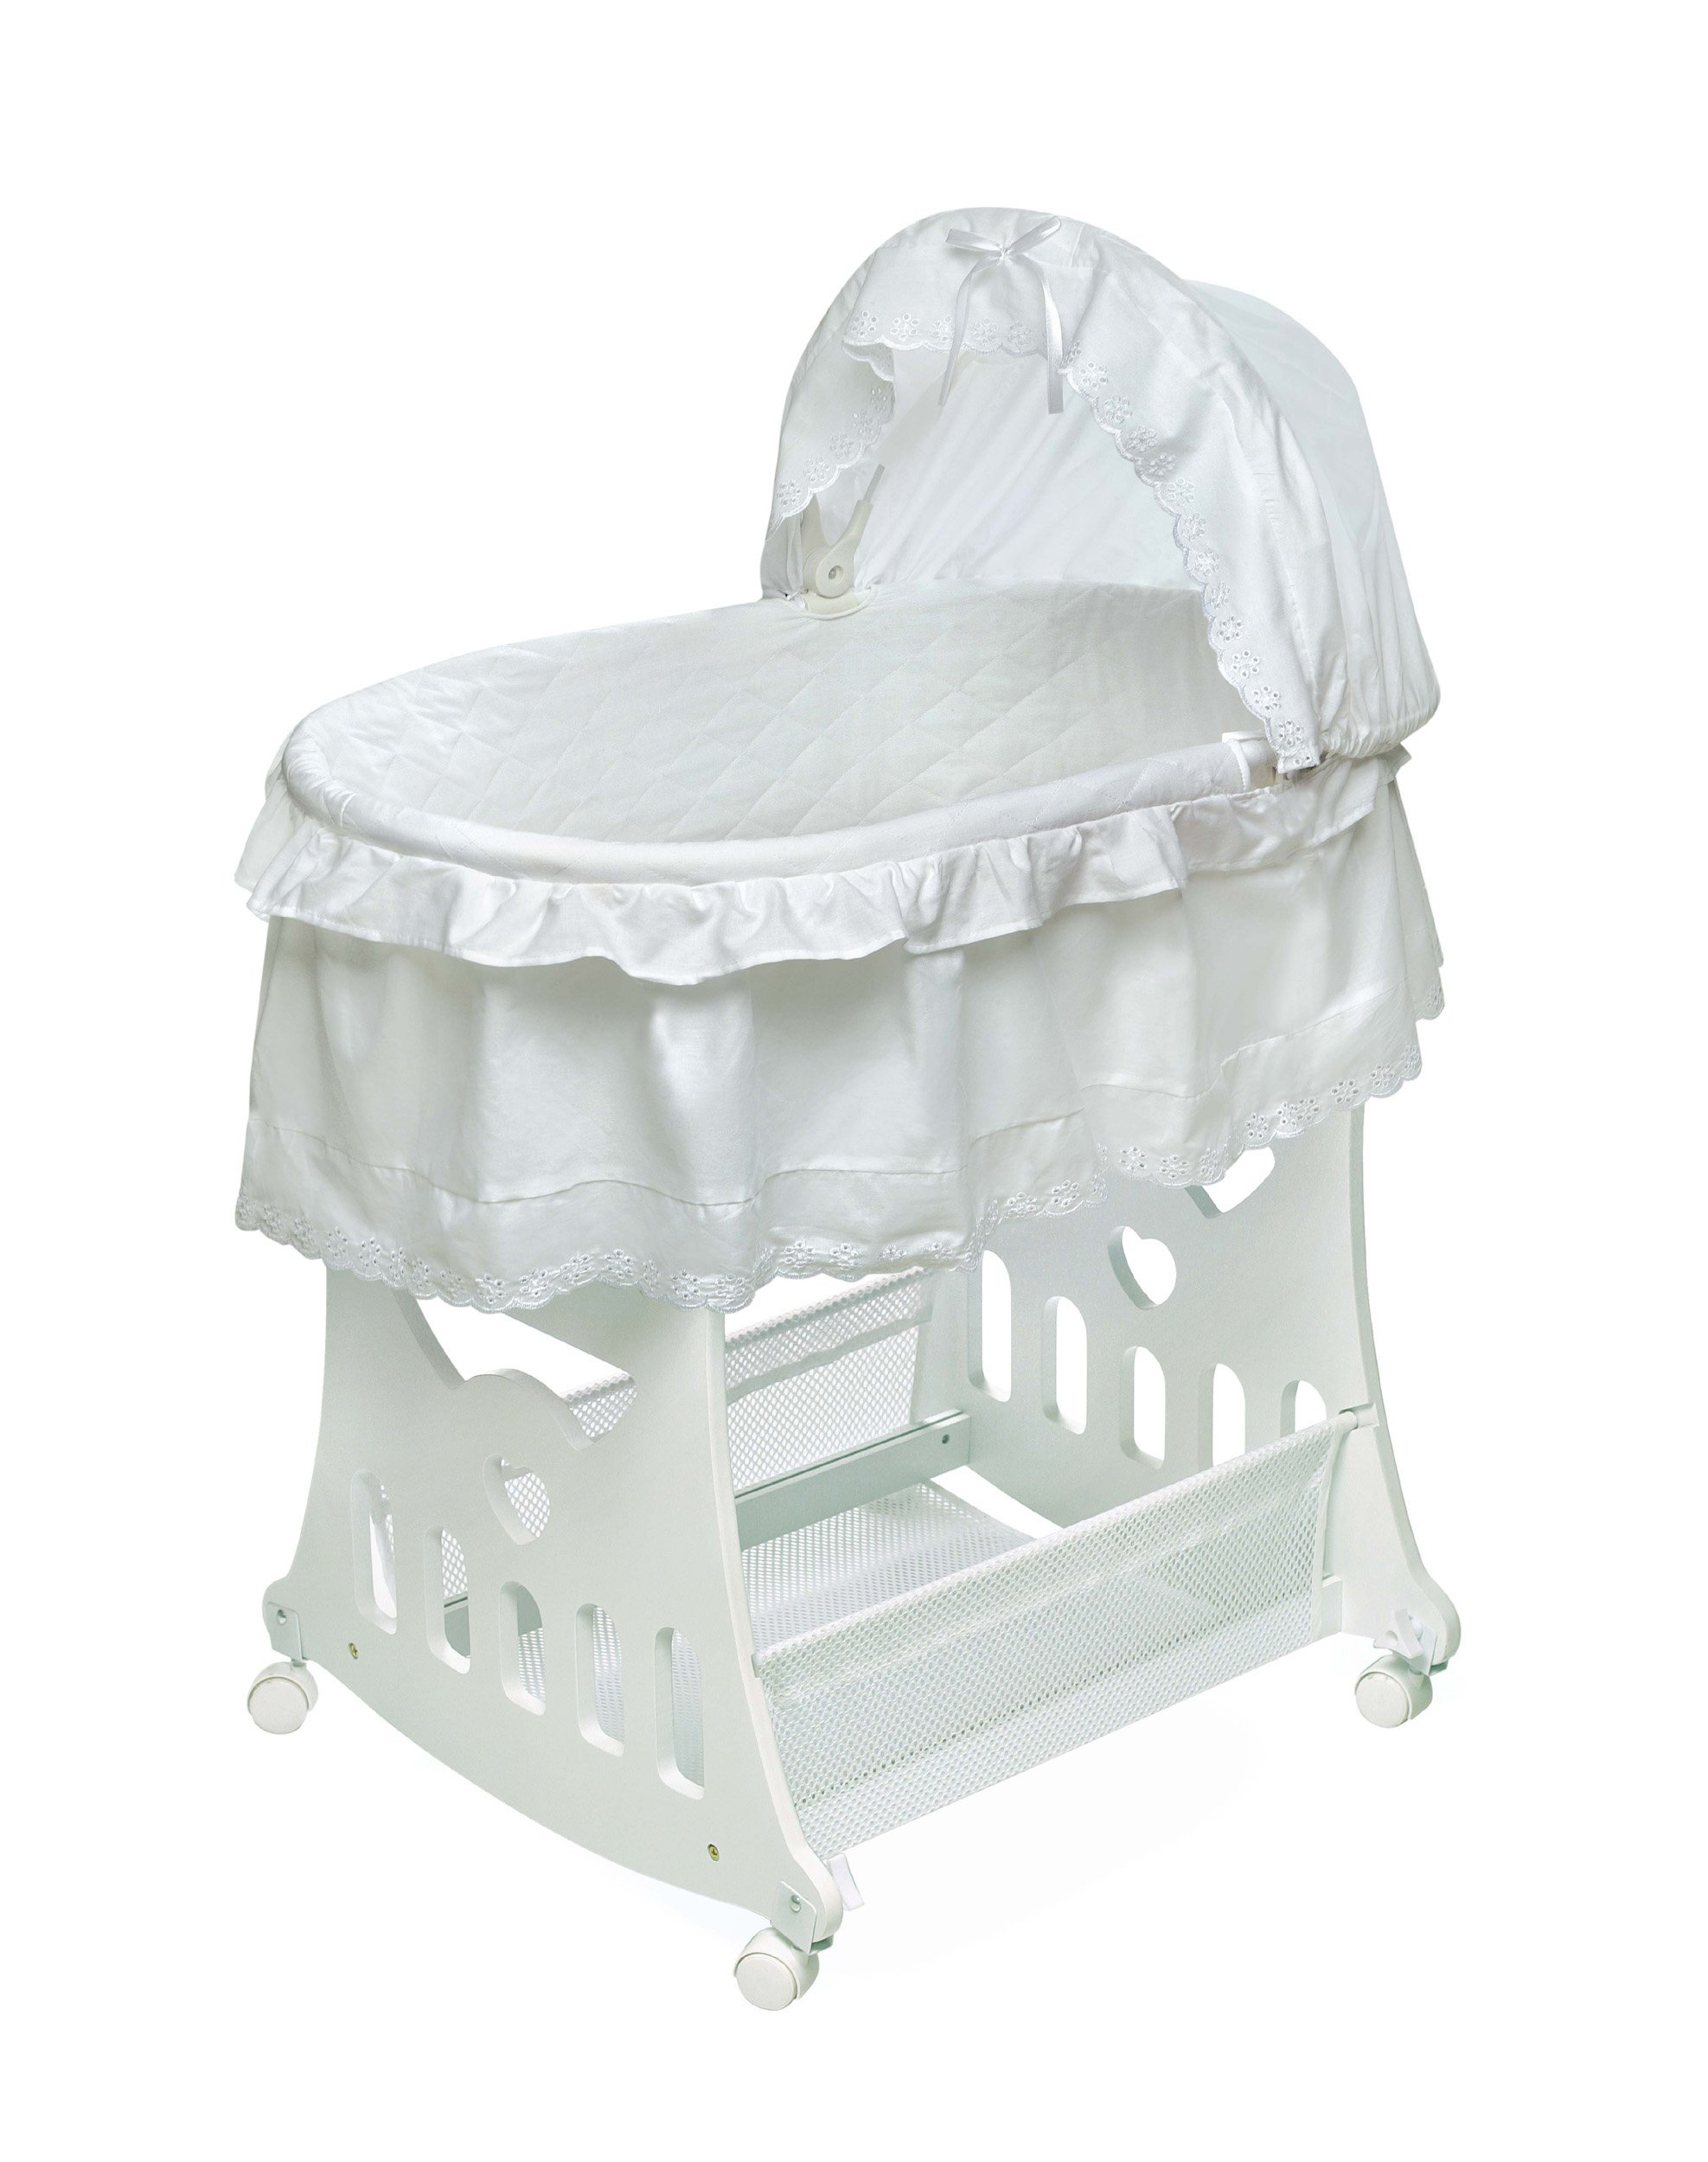 Badger Basket Half Skirt Portable Bassinet 'N Cradle with Toybox Base, White by Badger Basket (Image #1)